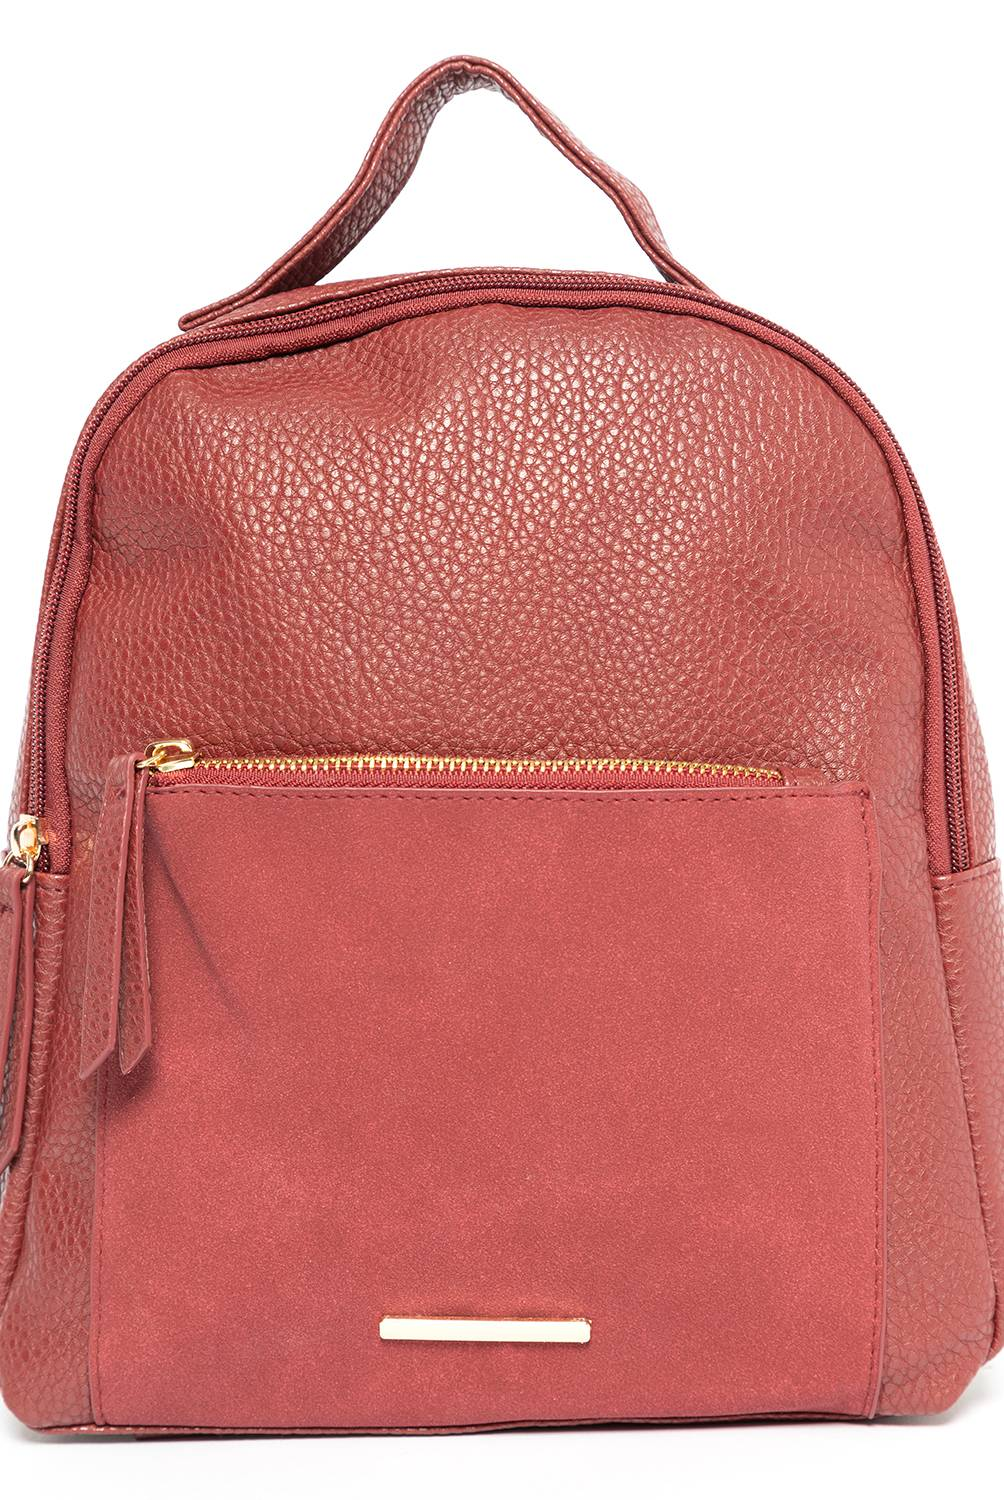 Southland - Morral Southland